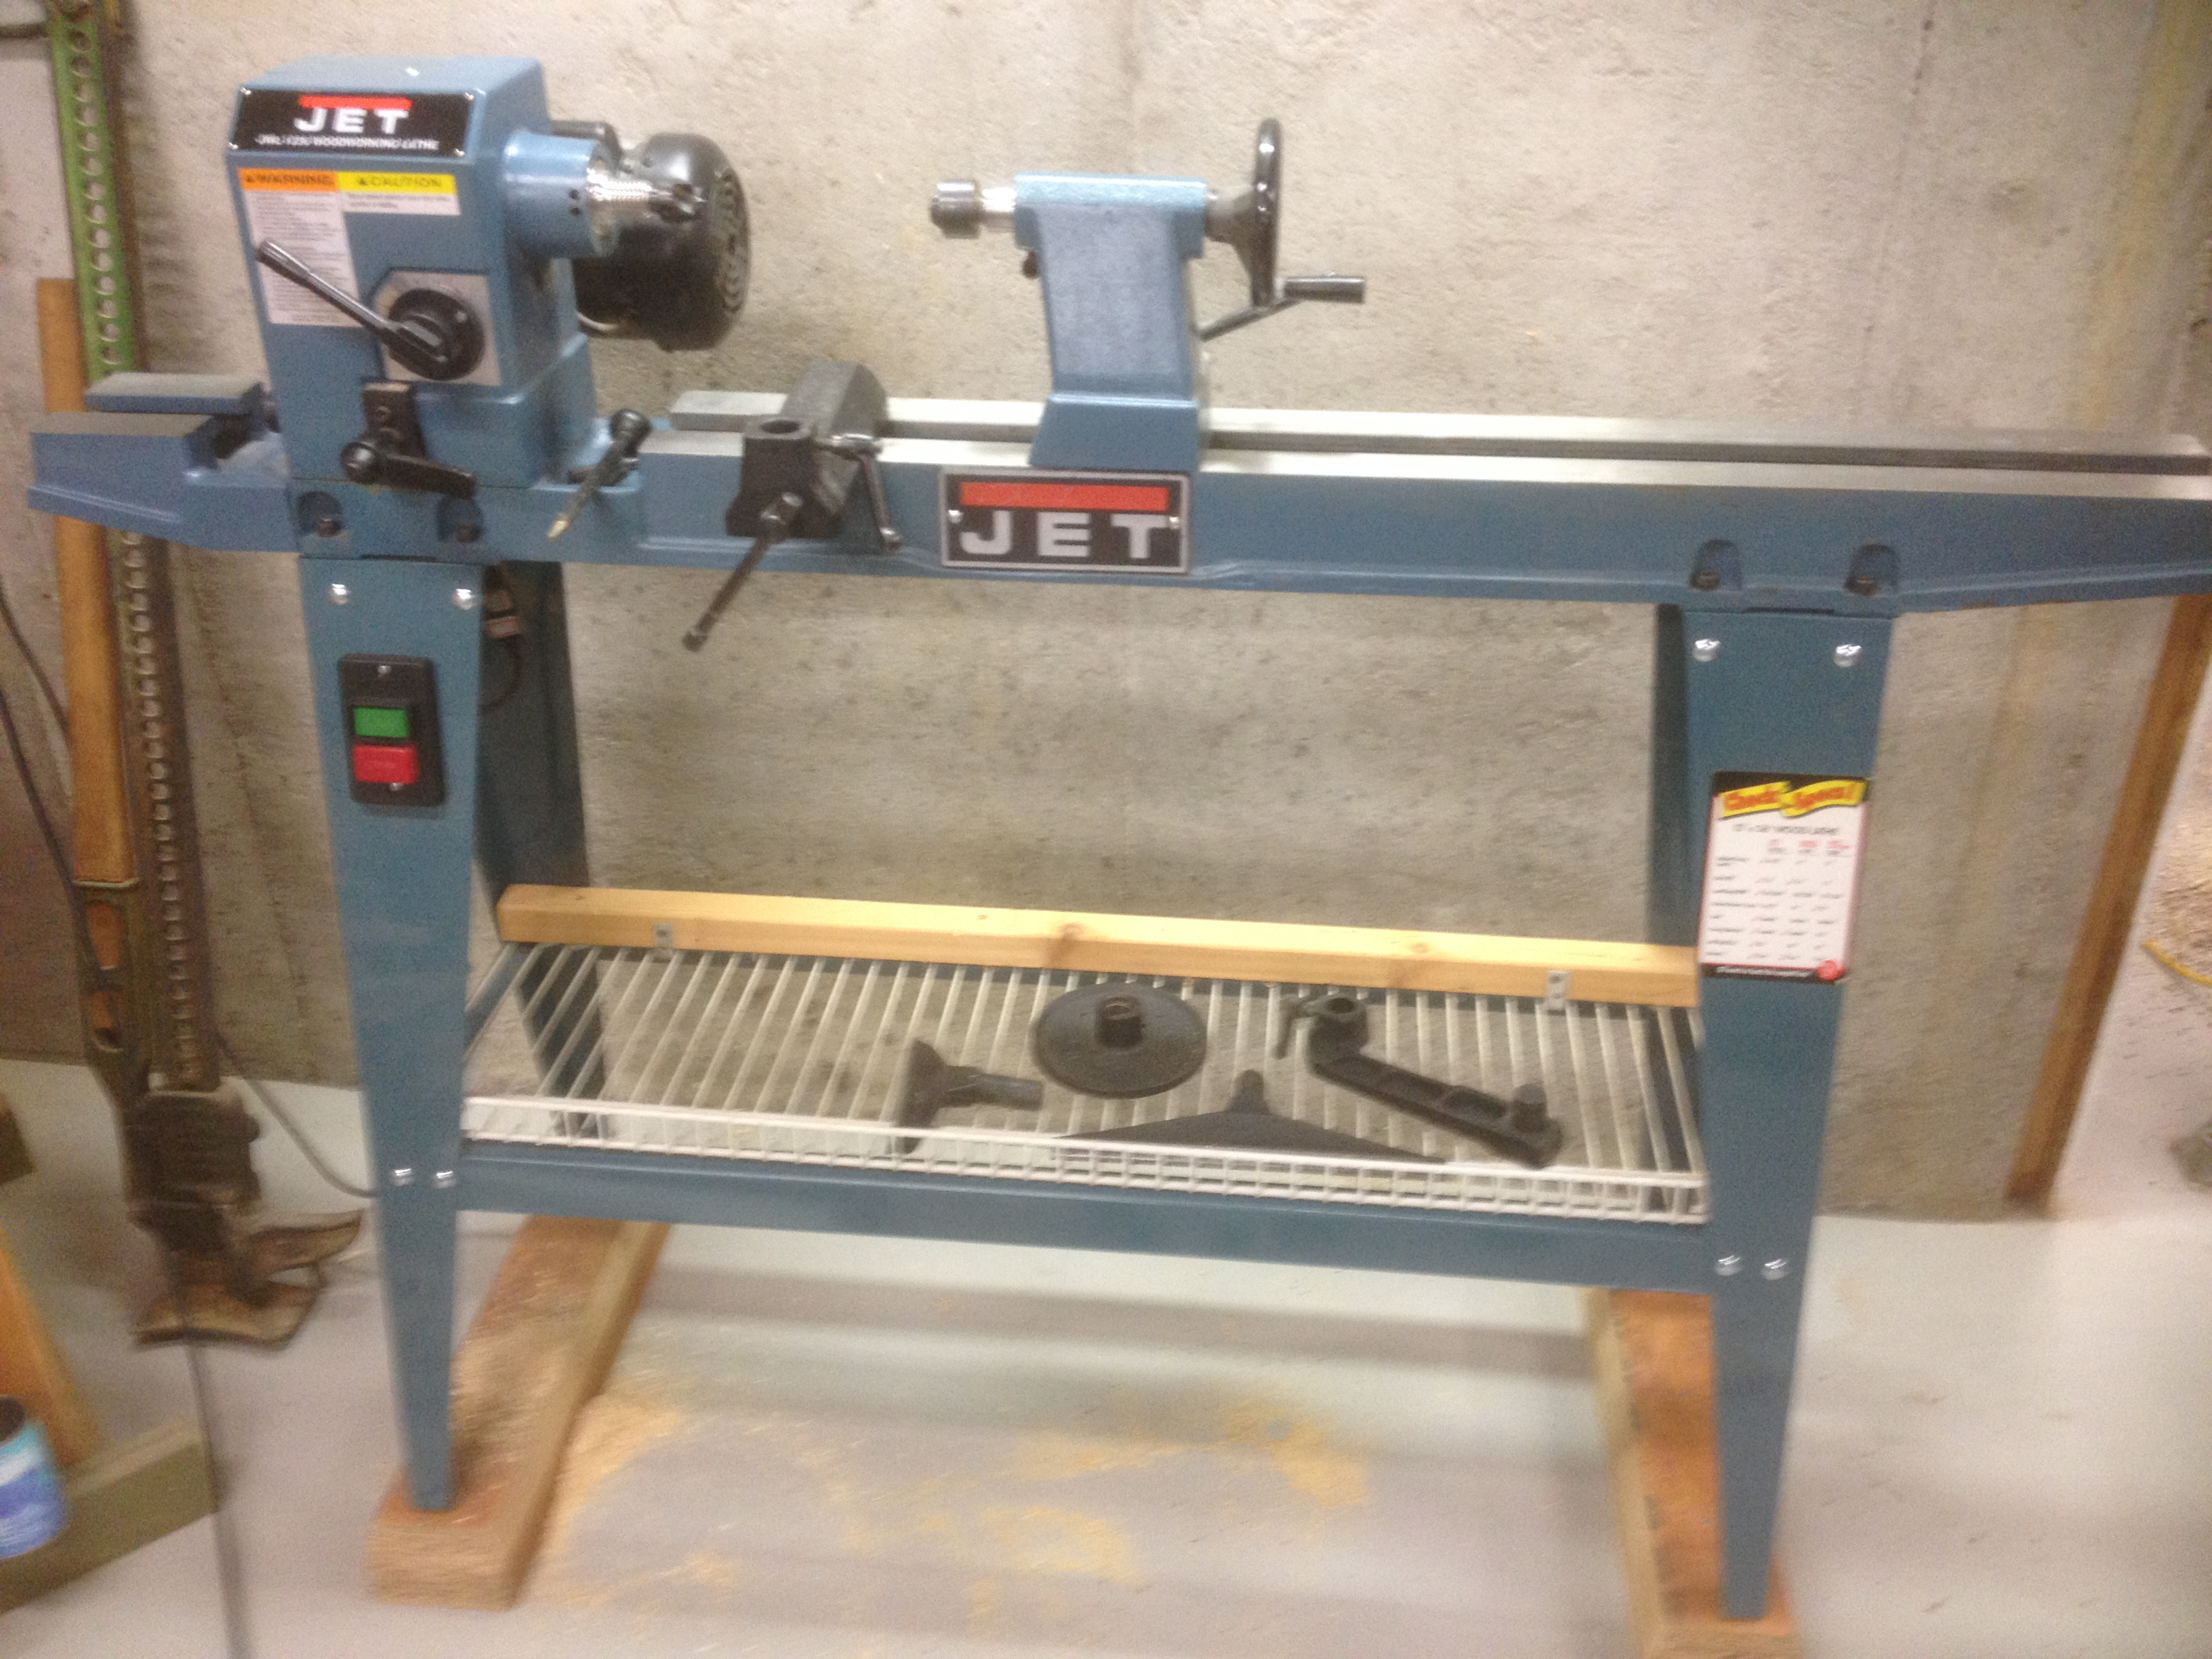 Jet 1236 Wood Lathe Manual